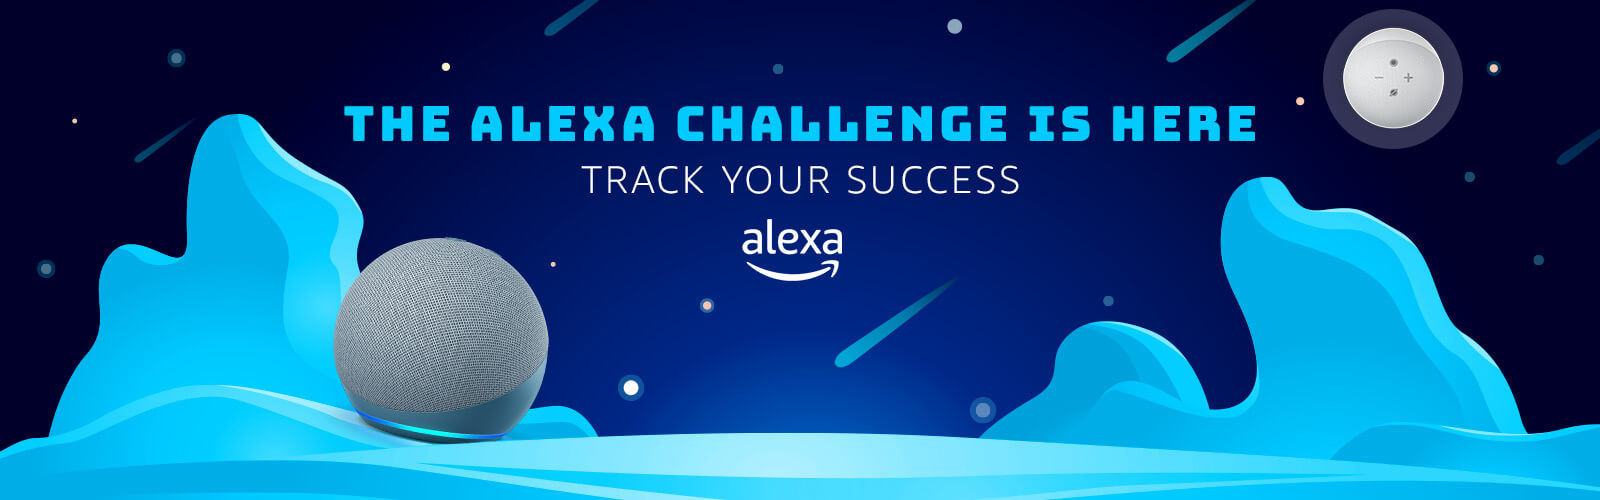 The Alexa Challenge Is Here. Track your success.